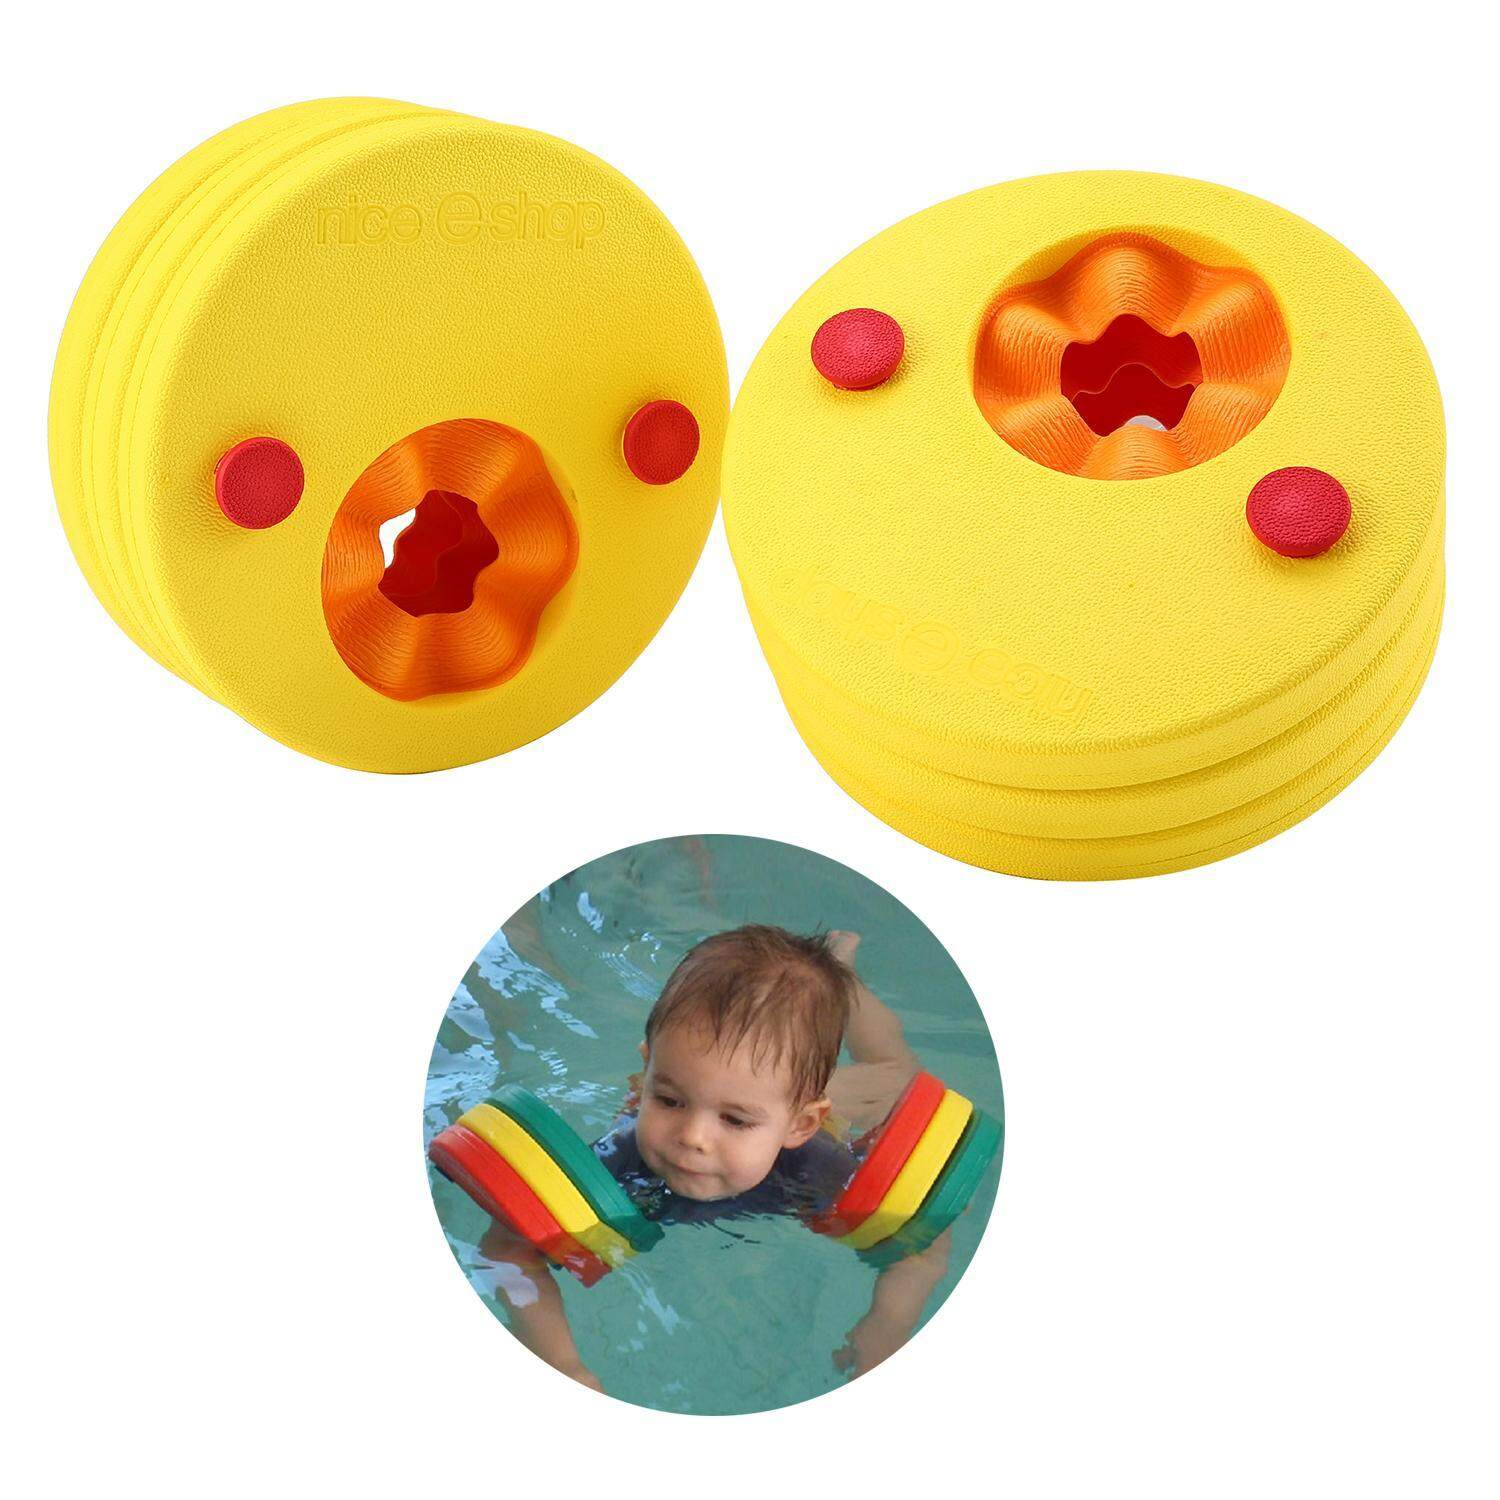 dmscs 6Pcs Kids Float Discs Swim Arm Band Swimming Pool Learn To Swim Aqua Water Float Set